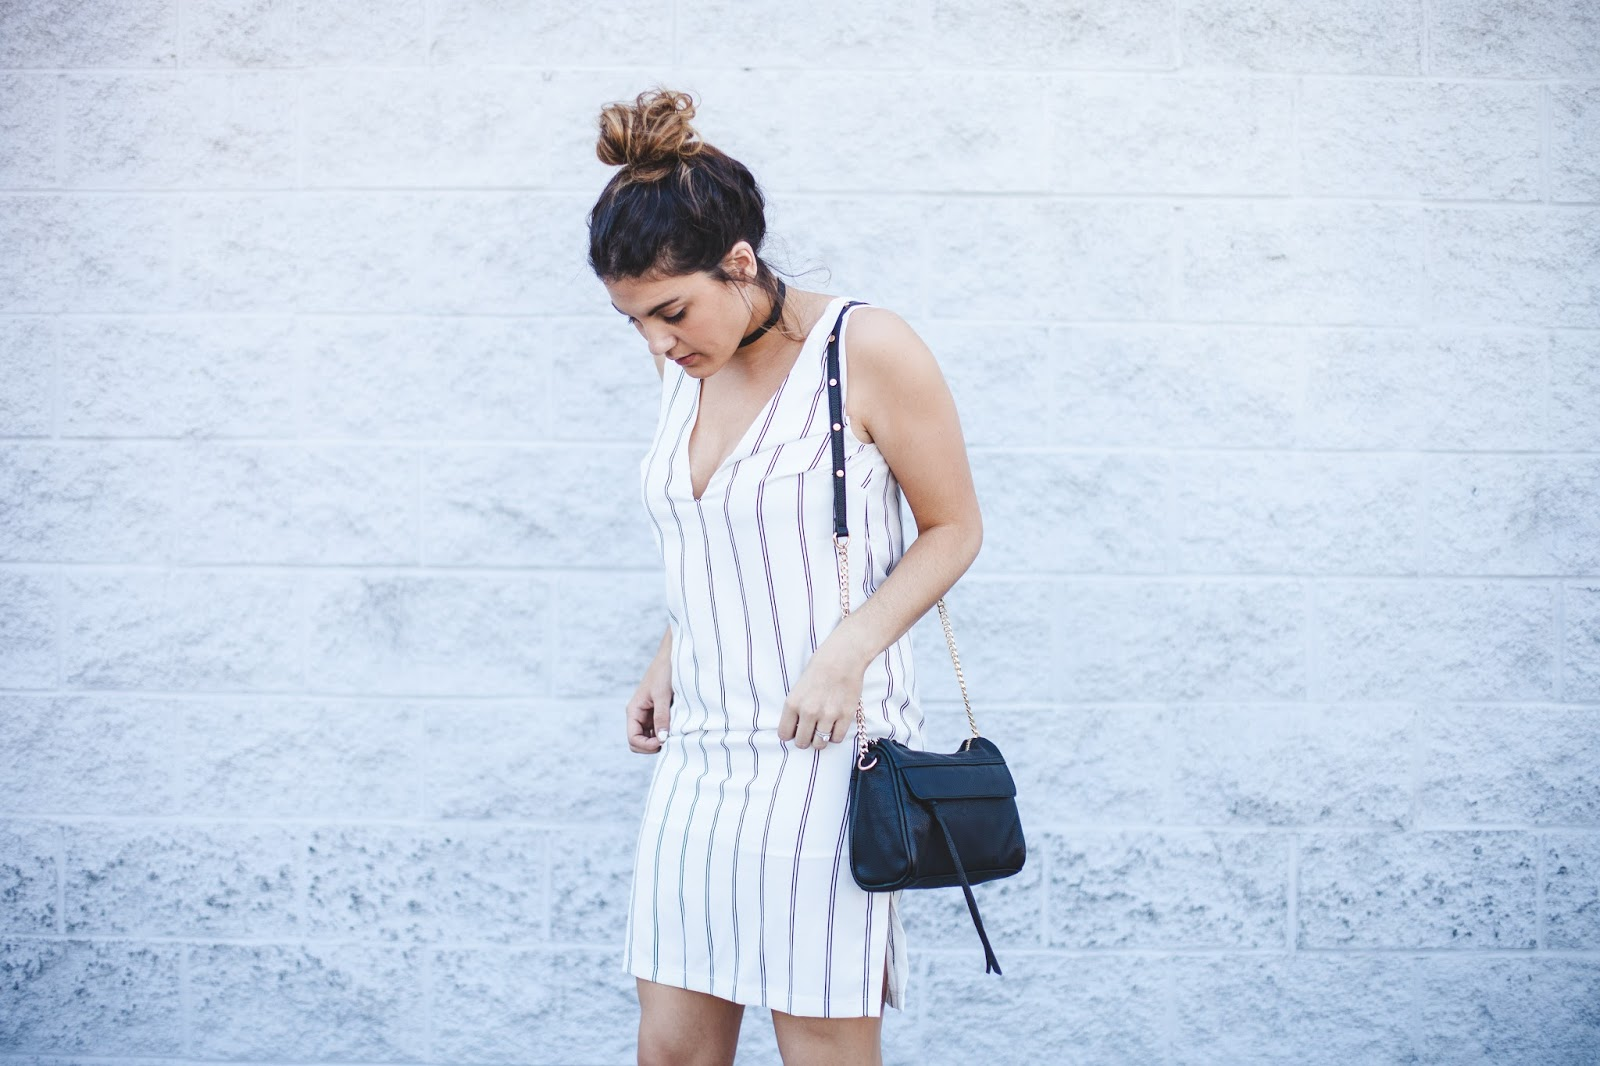 Plunging Shift Dress from Tobi - Blogger My Cup of Chic